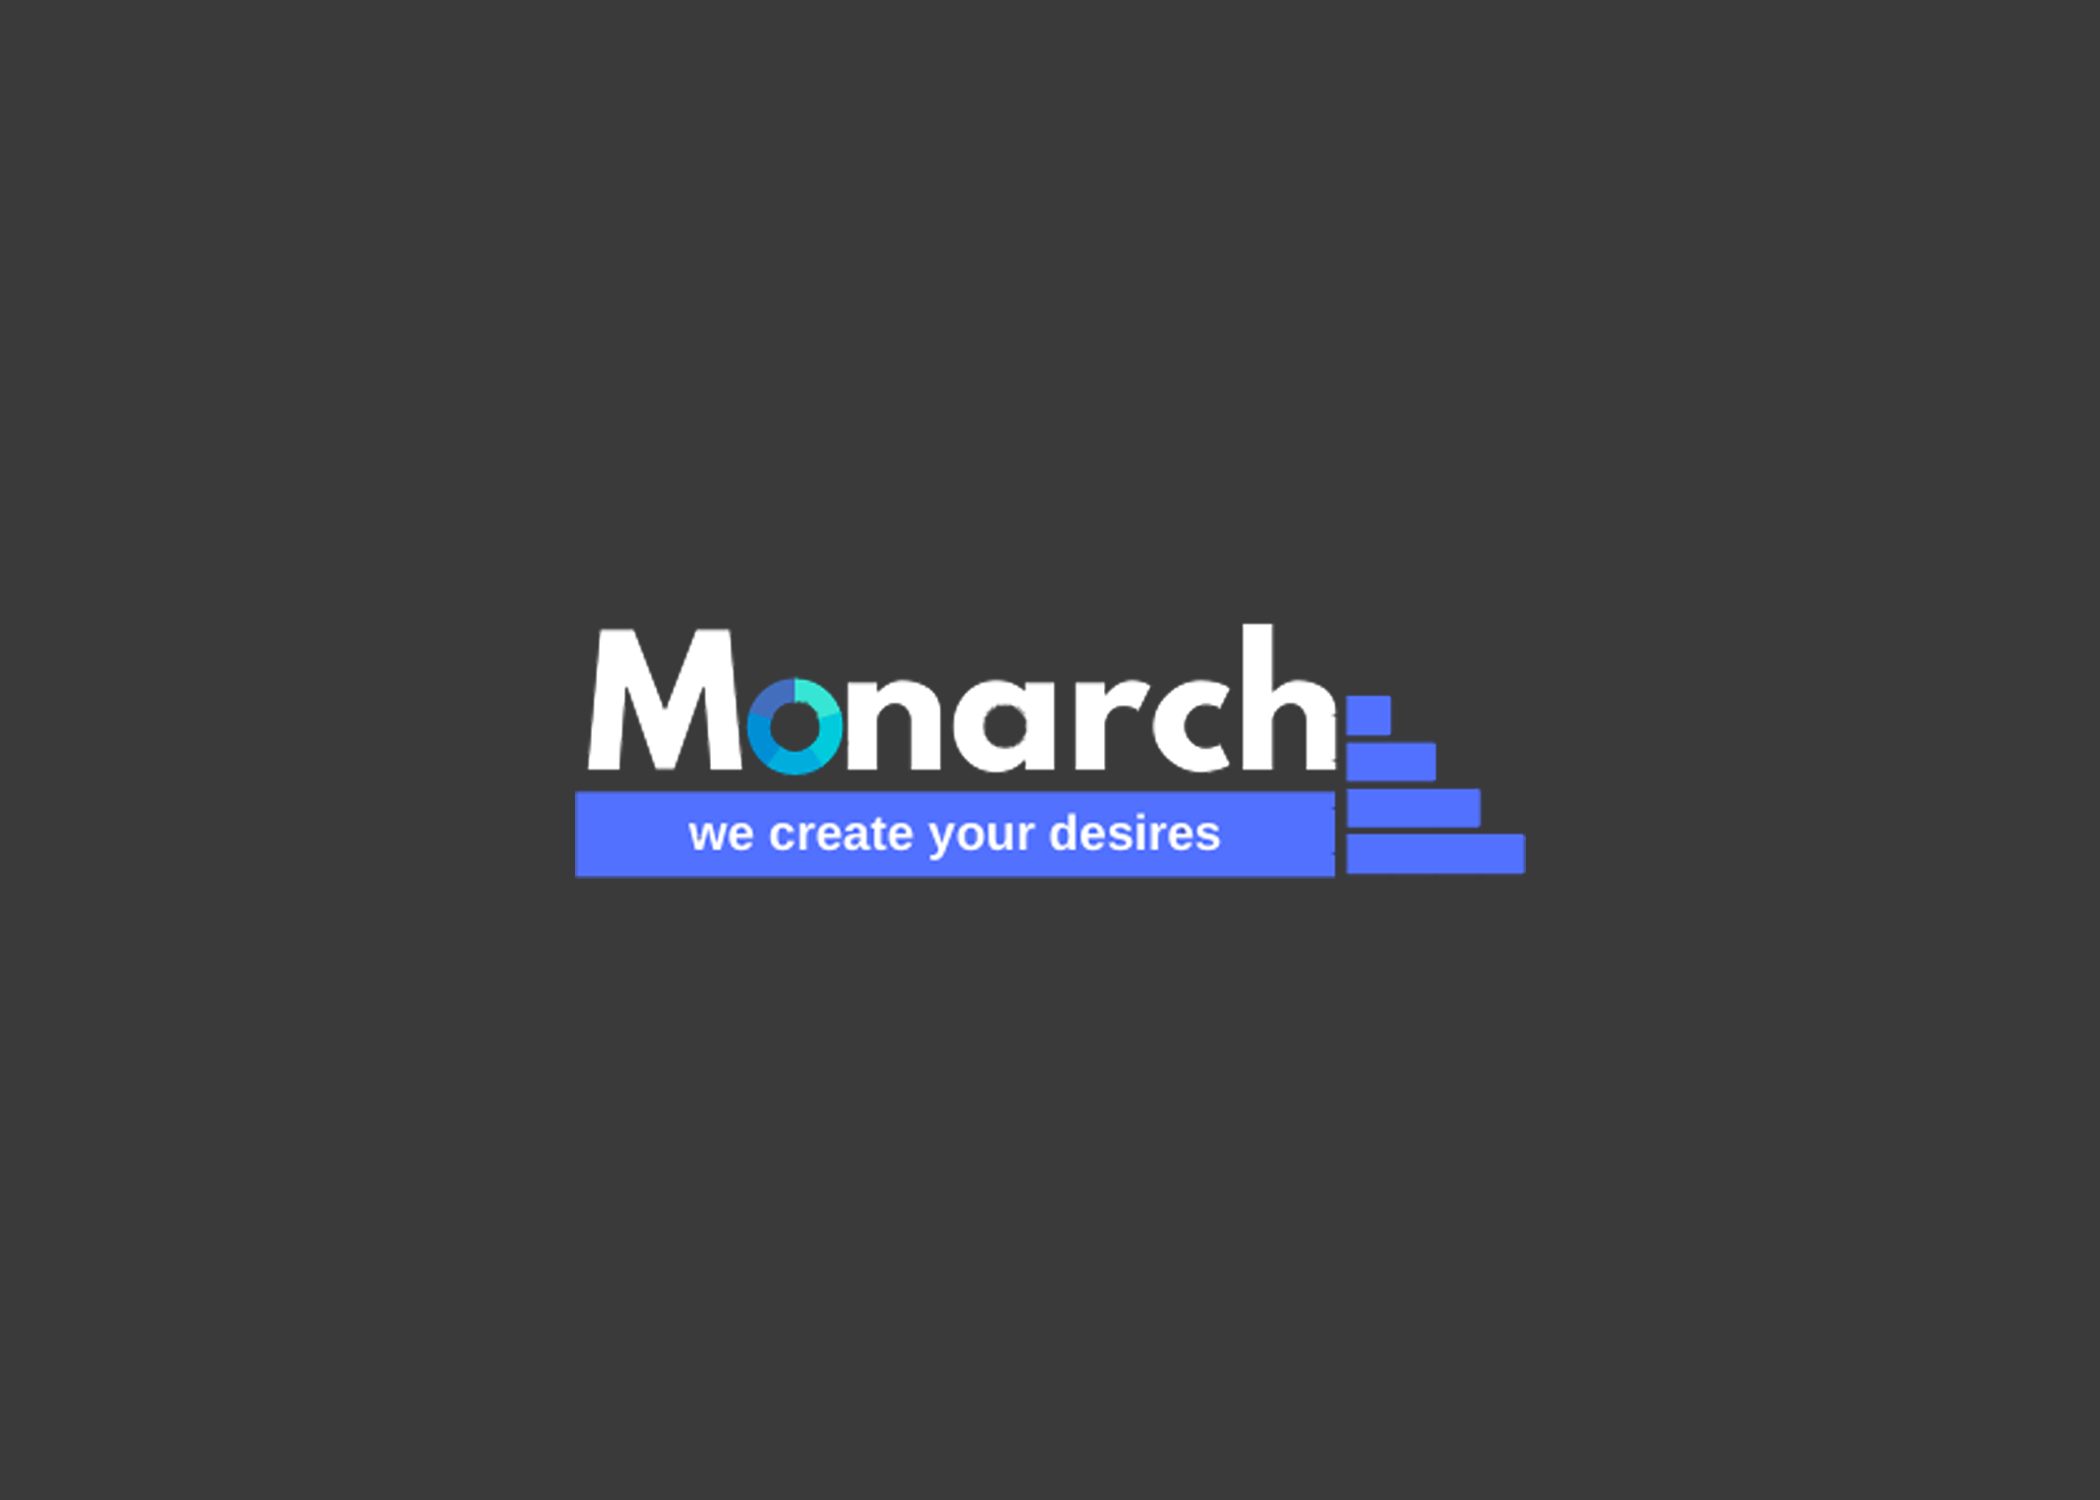 Monarch Seo Agency